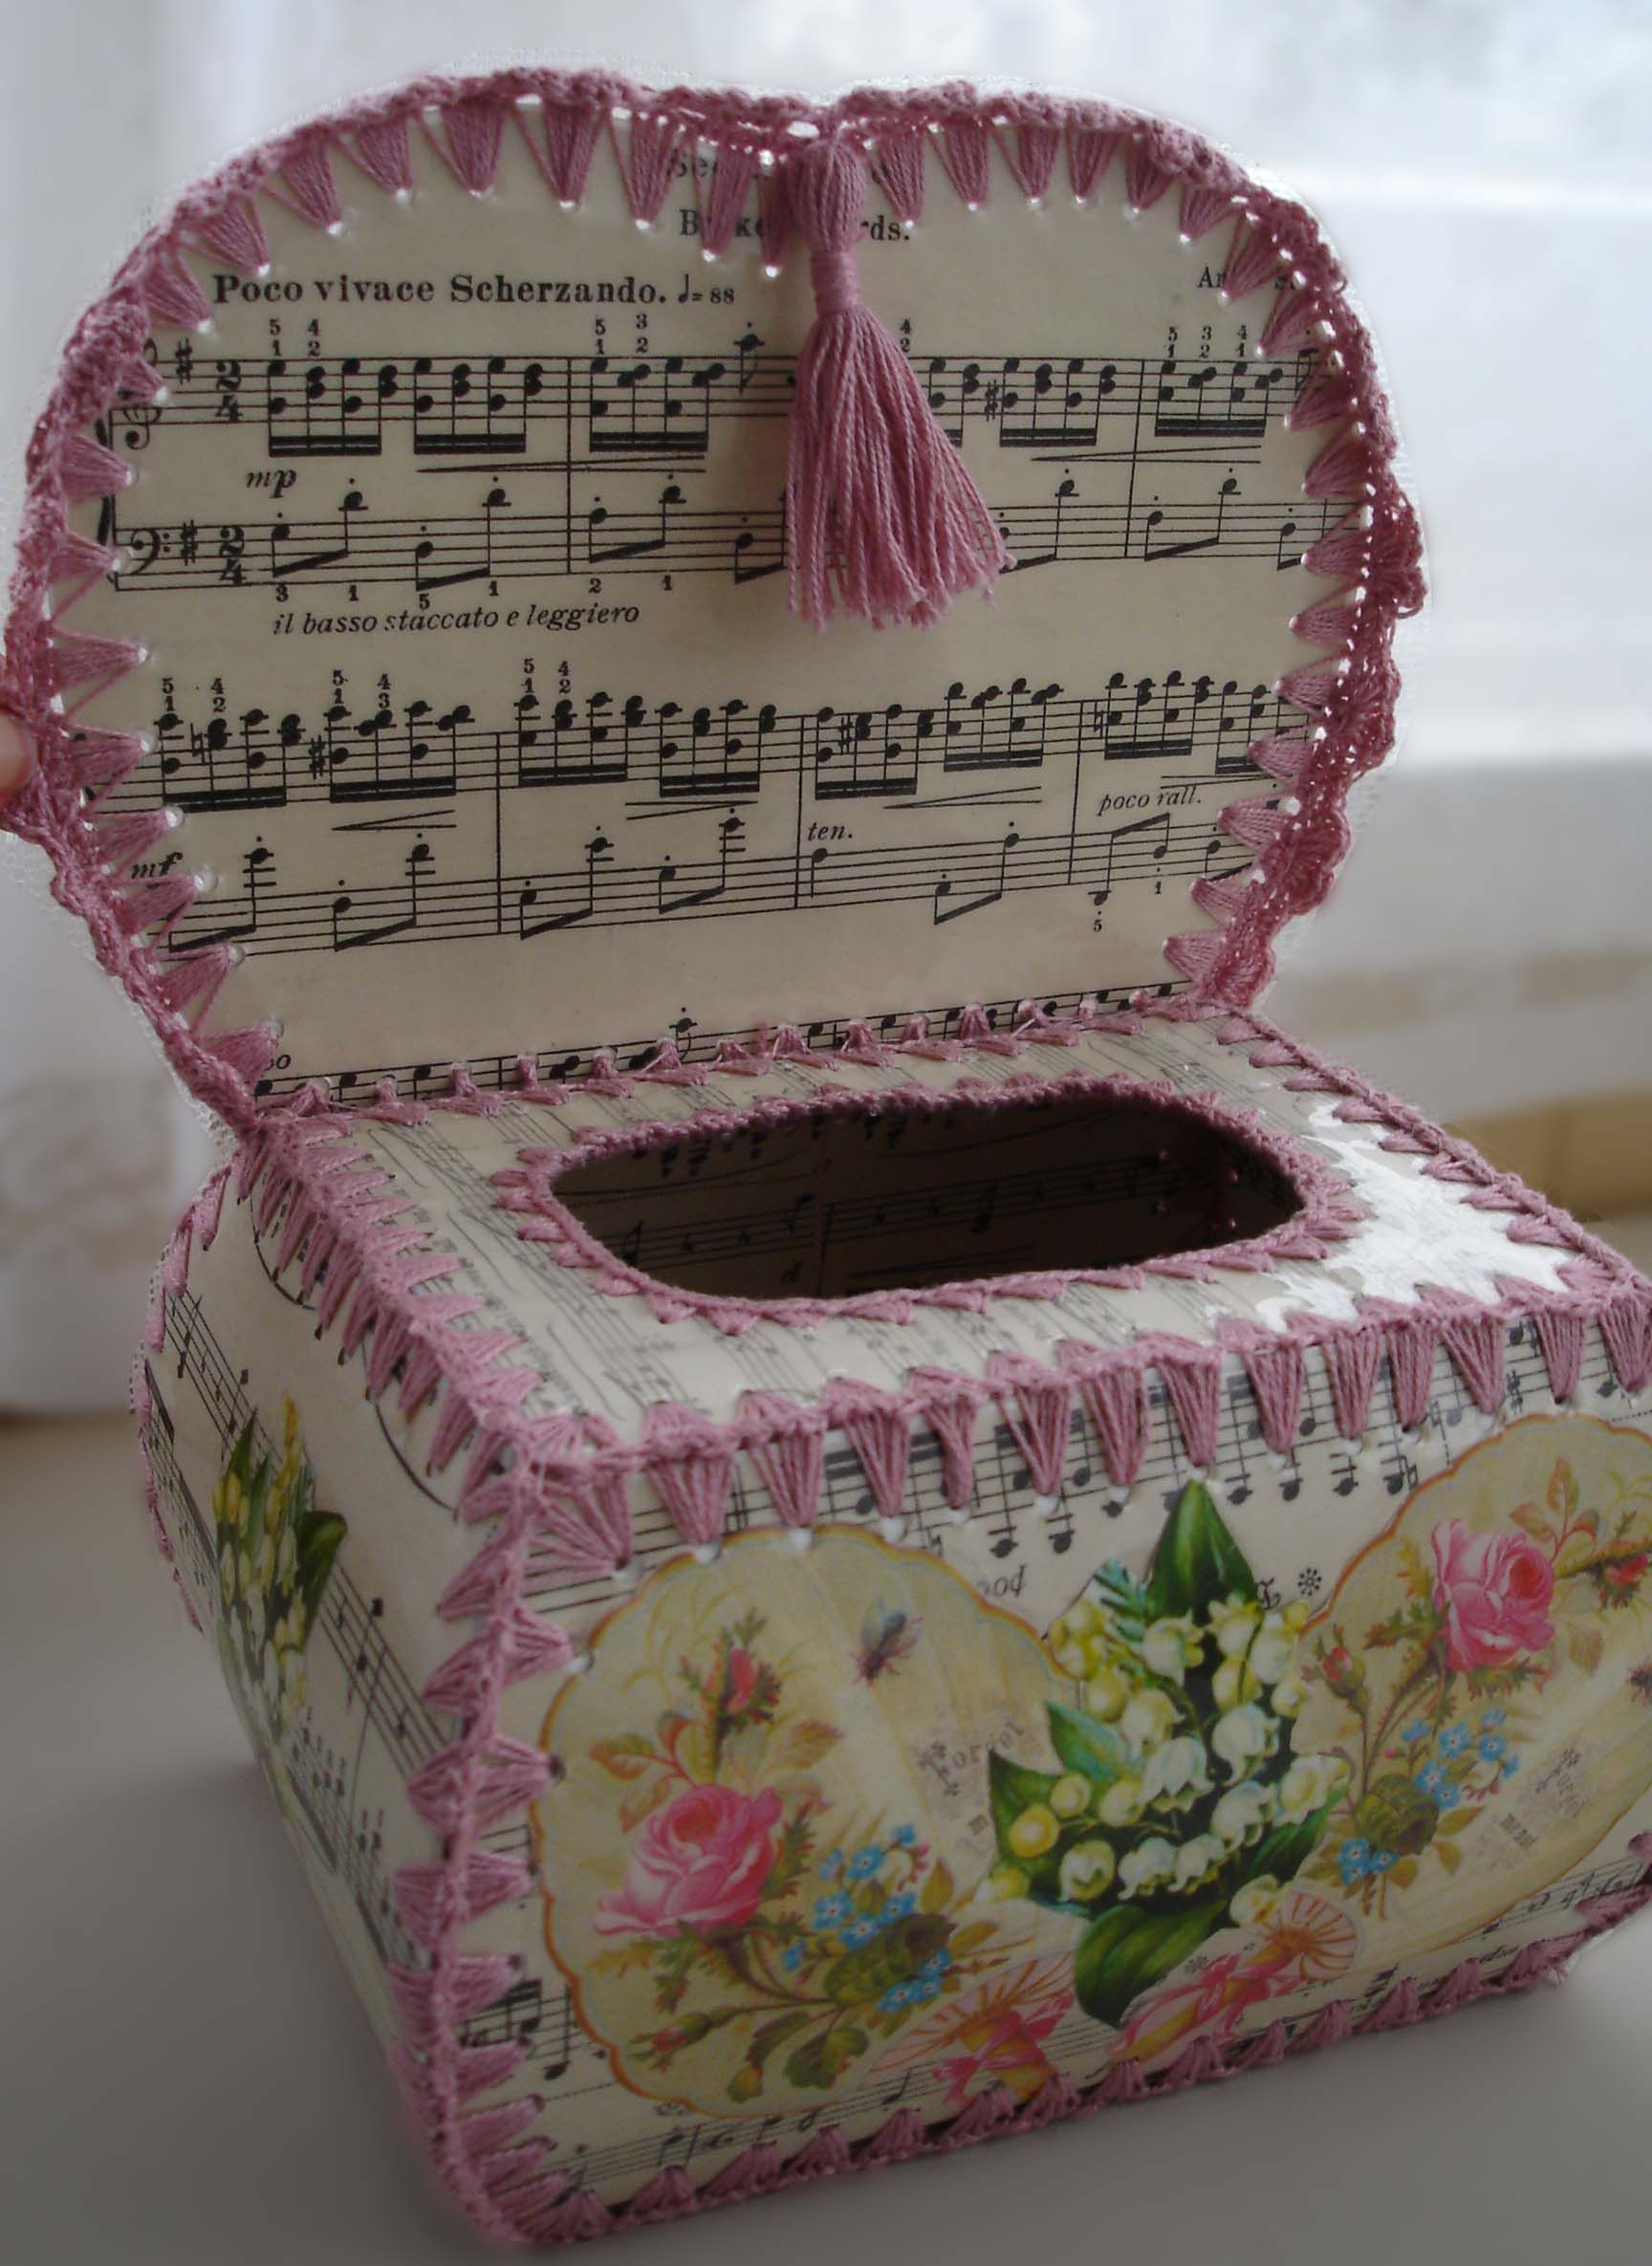 Music Crochet Box inside by Cosmica. I've gotta figure out how these are made :)